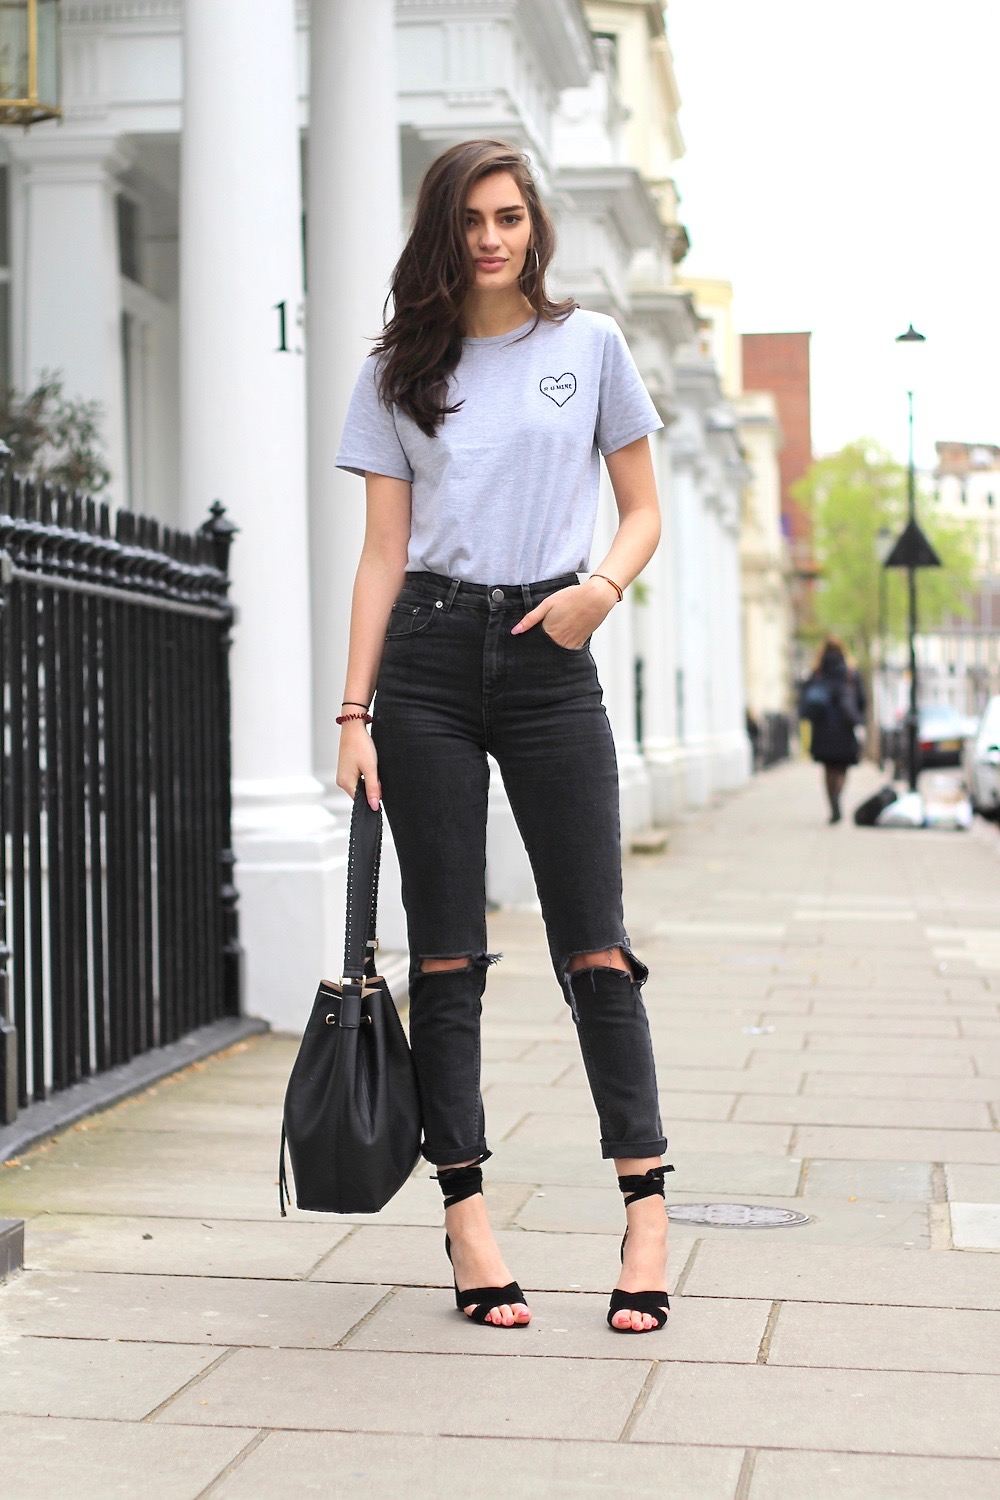 casual jeans and t